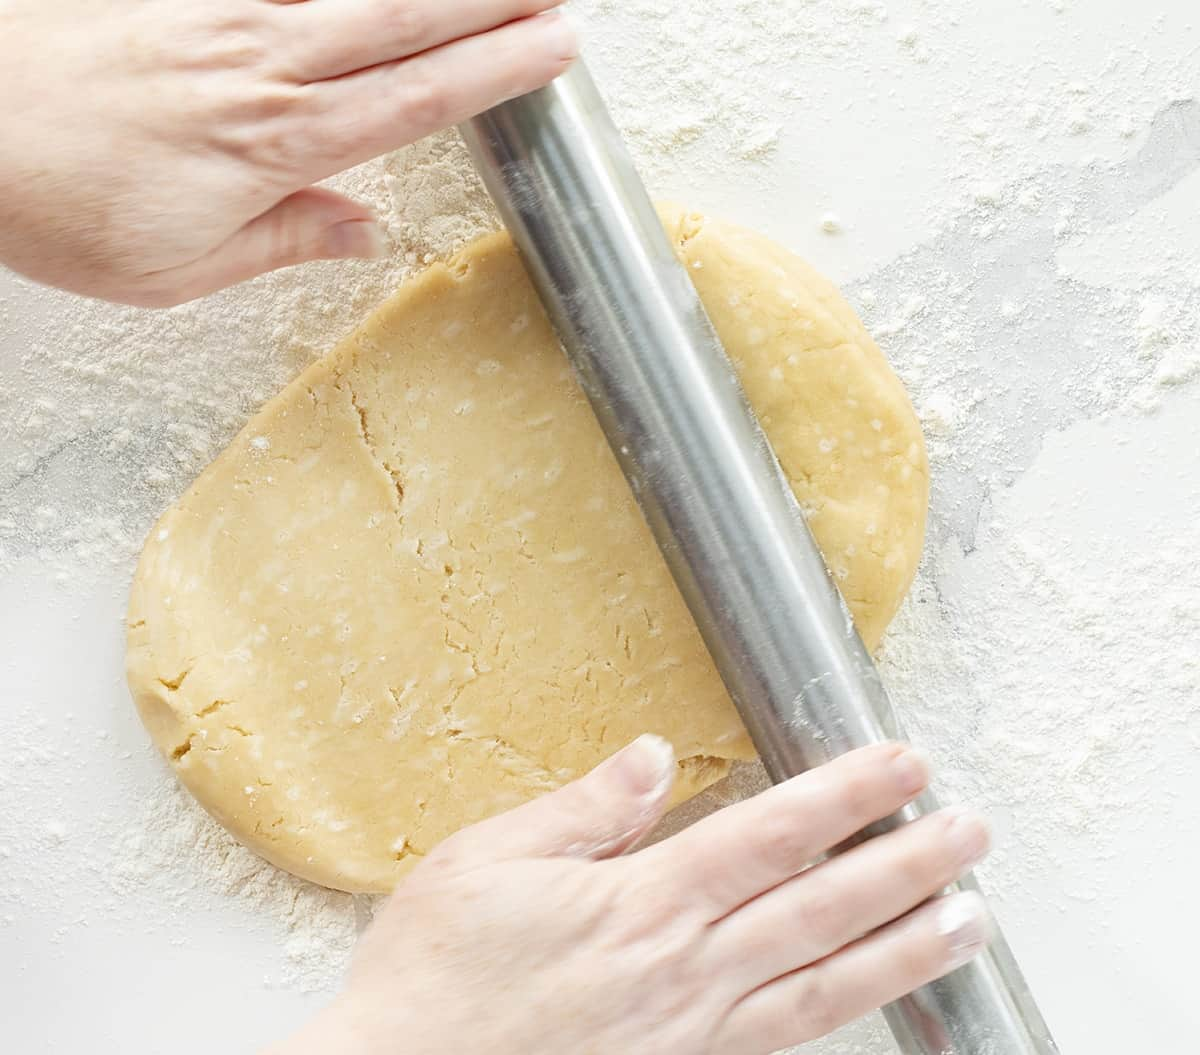 Rolling out Homemade Pie Crust